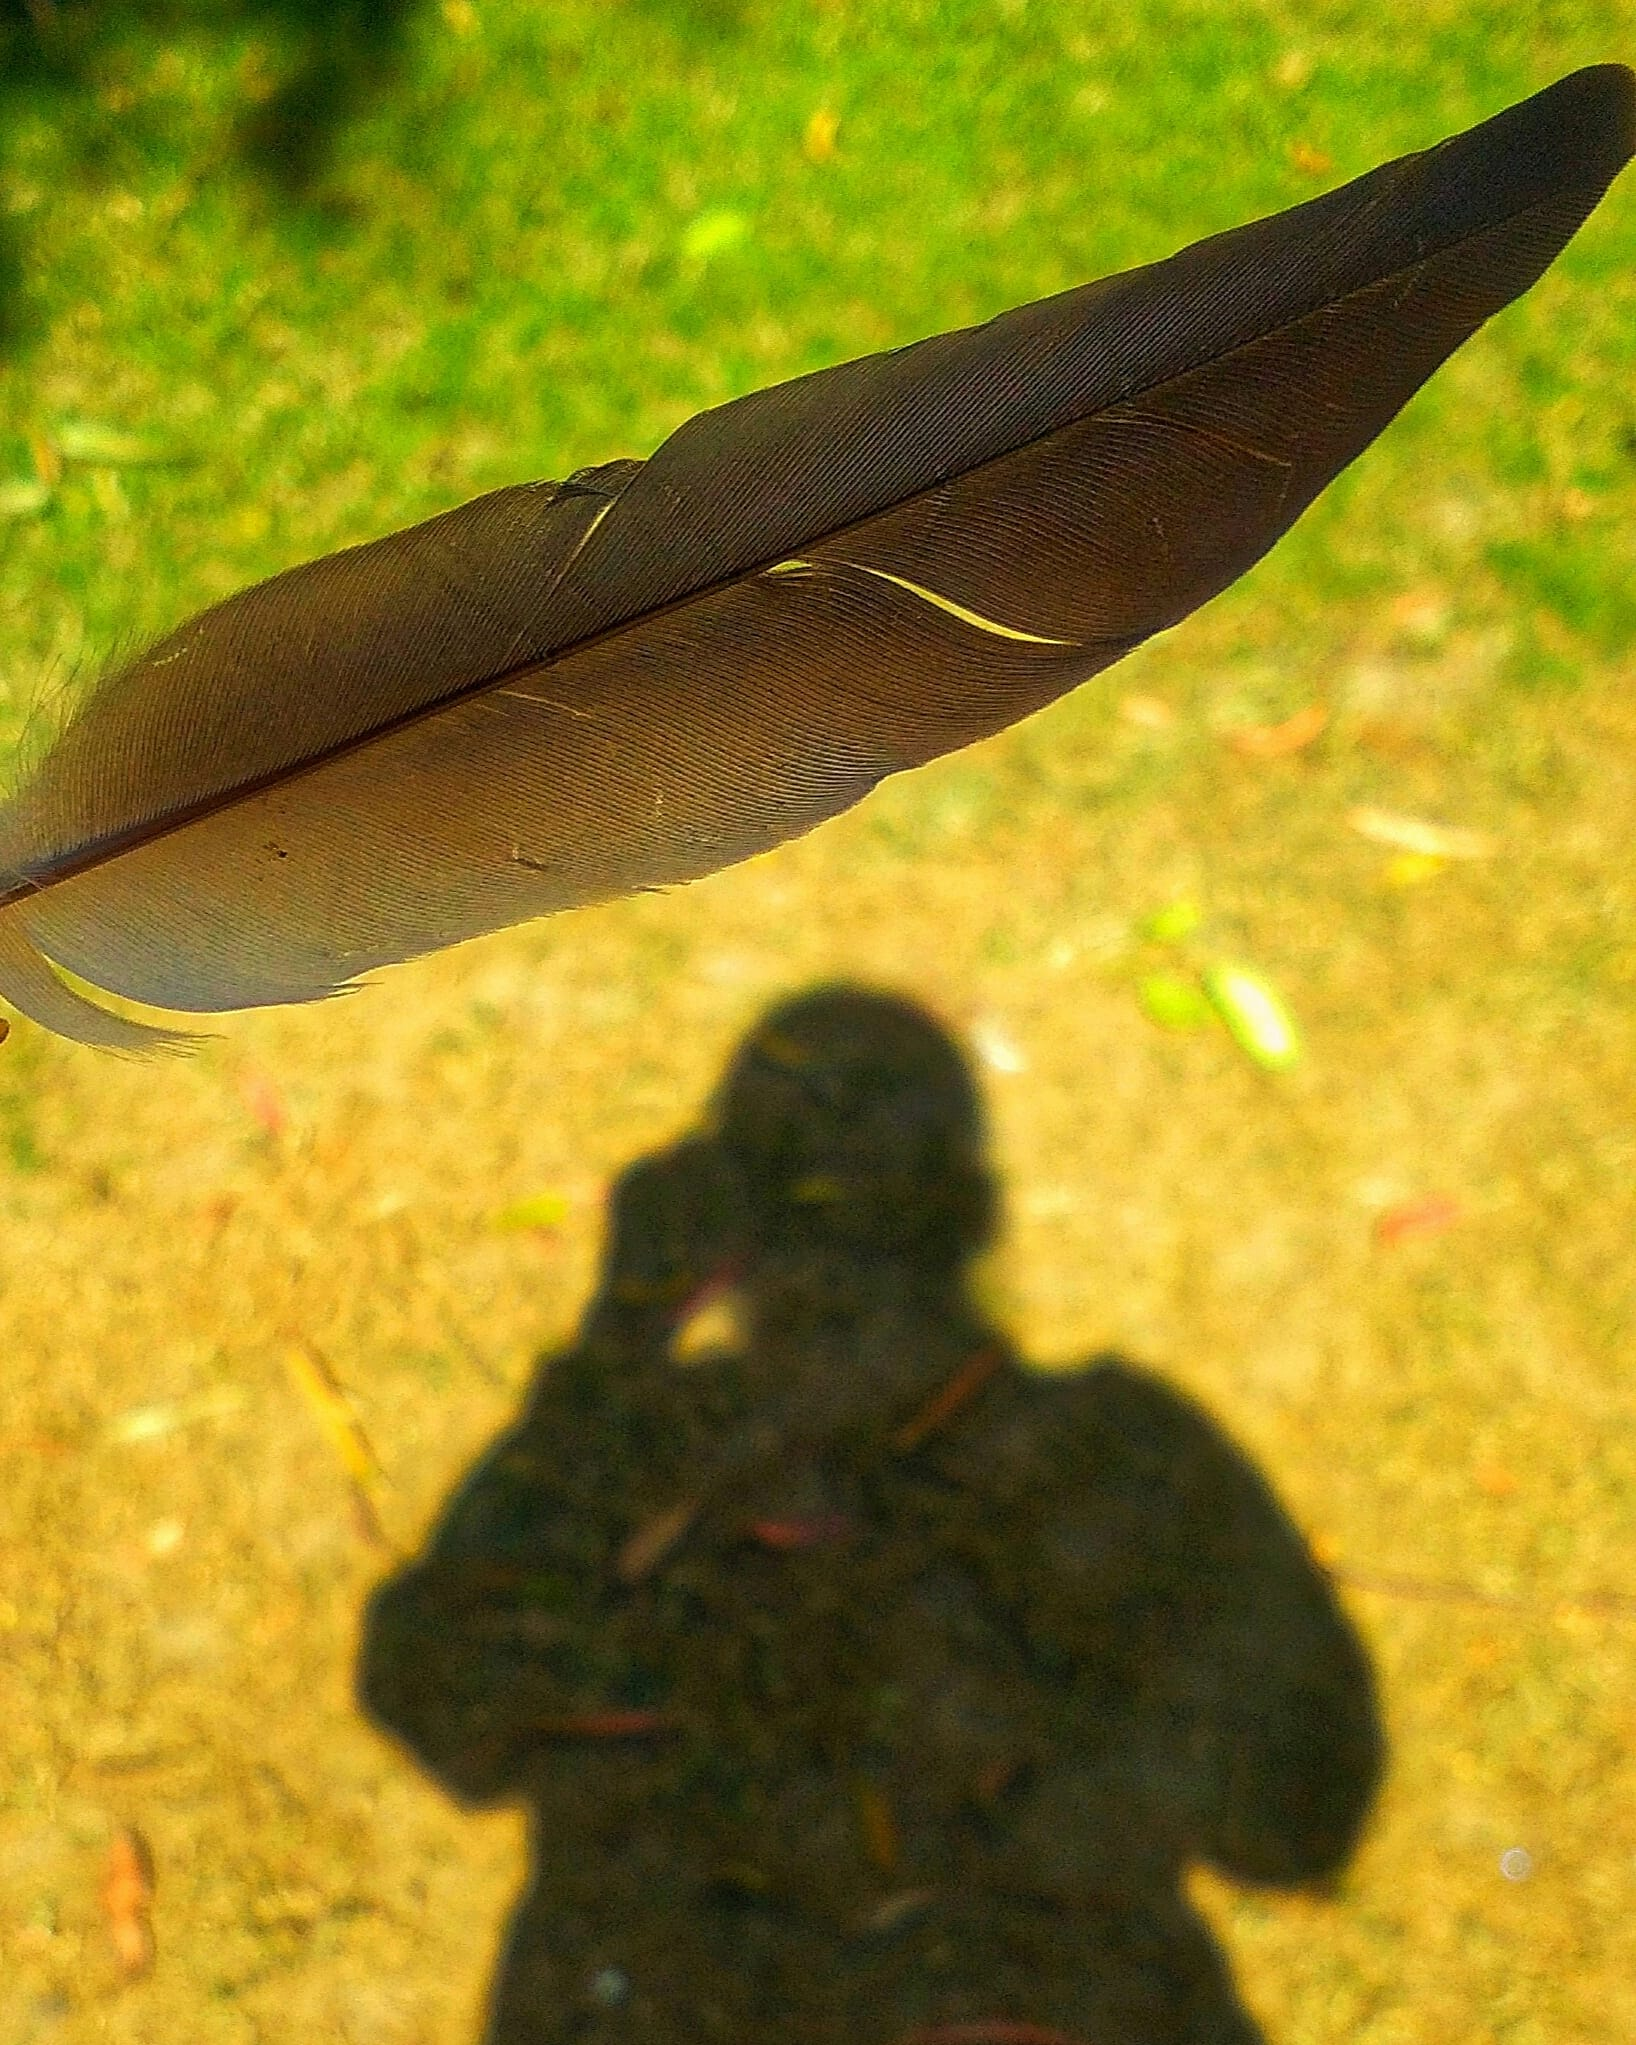 A bird's feather and shadow